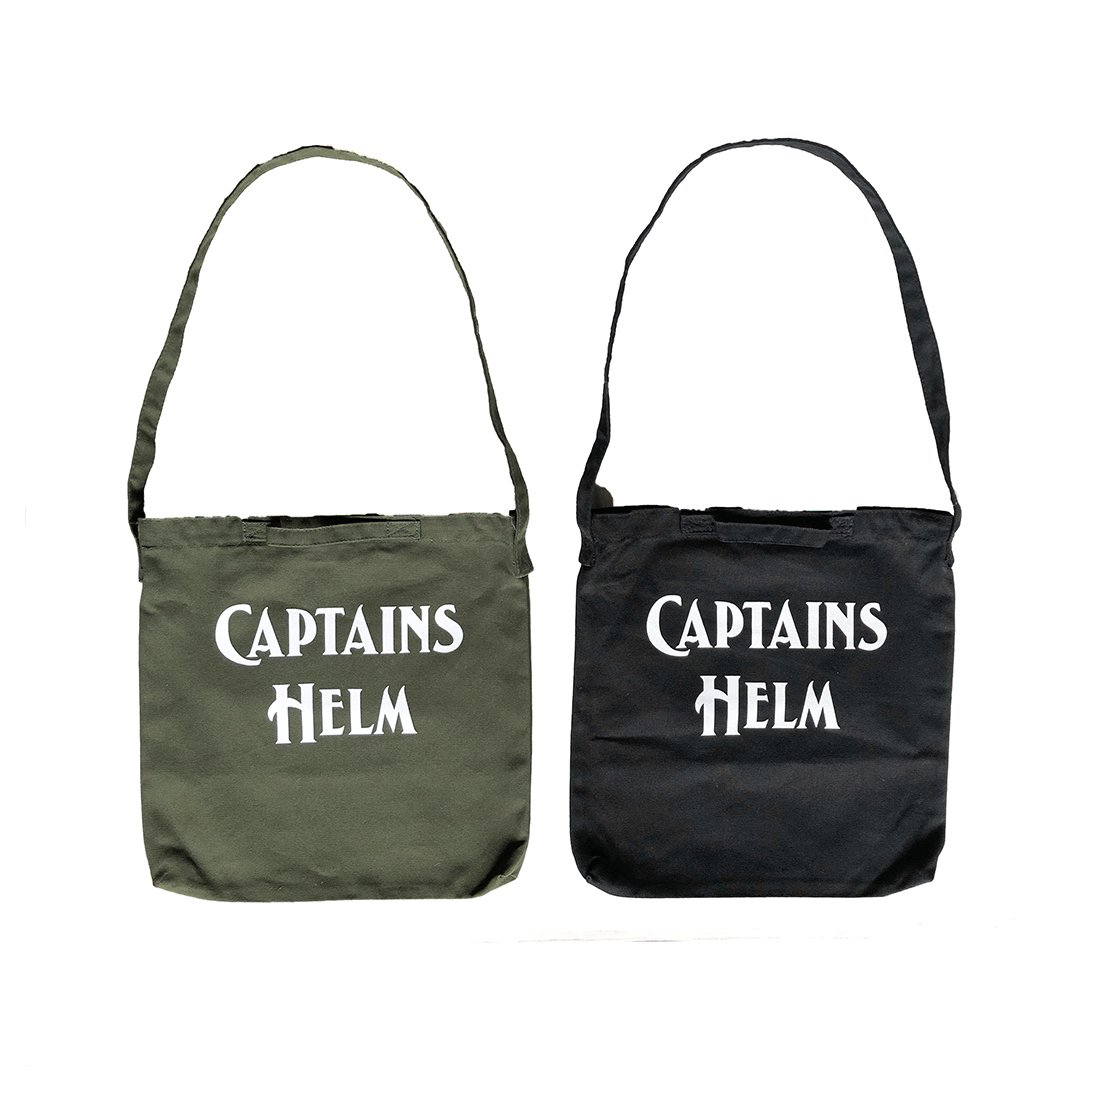 CAPTAINS HELM #LOGO 2WAY TOTE